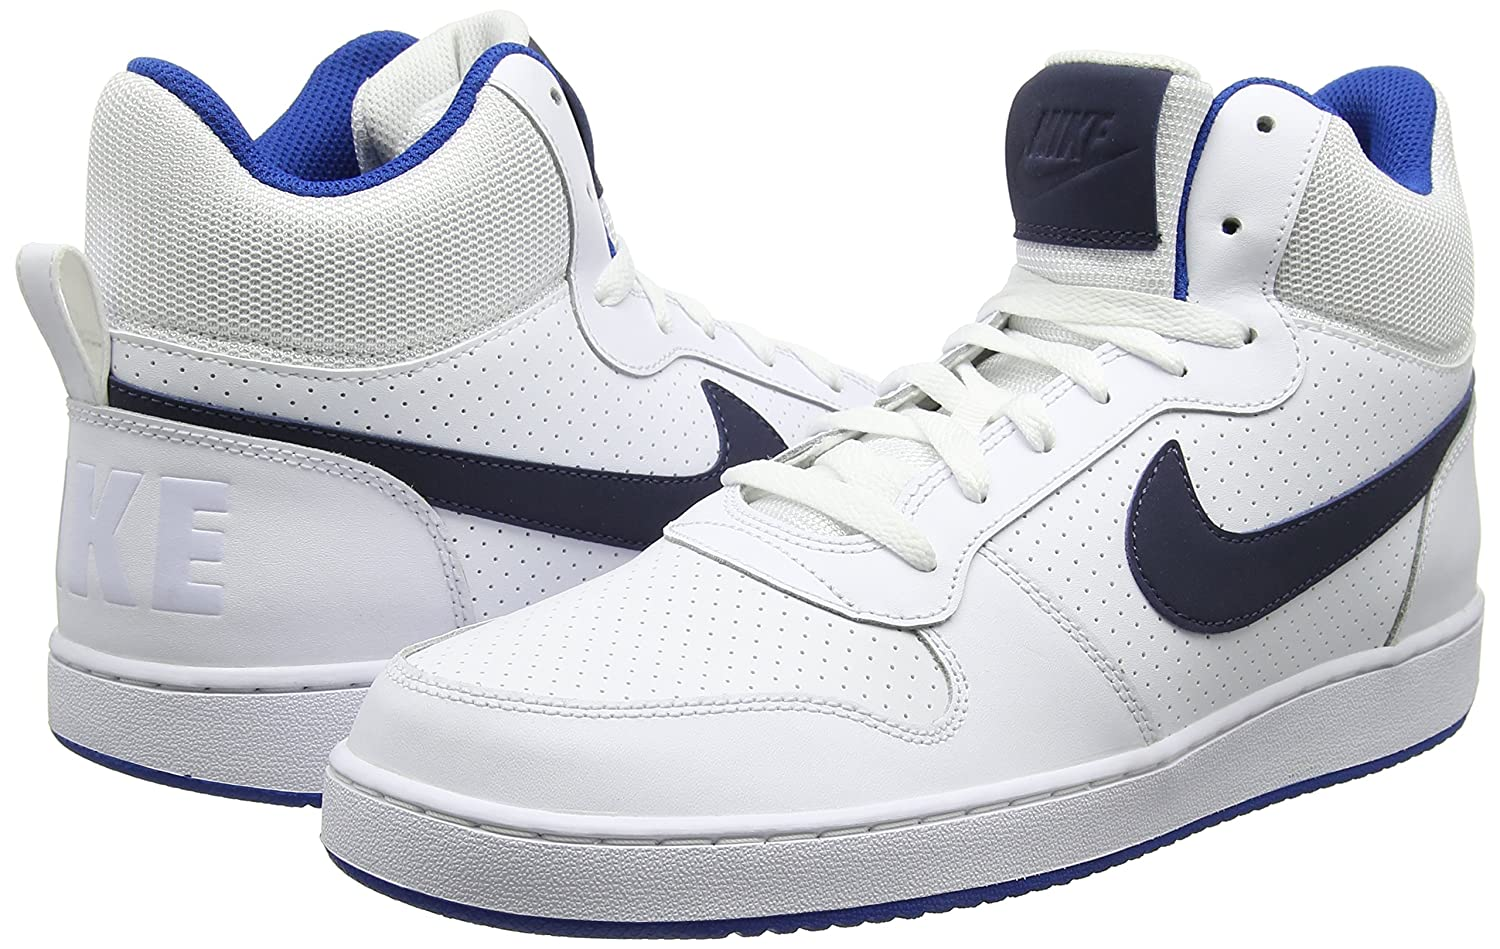 the latest e069b ab3c8 Nike Altas Court Borough Mid, Zapatillas Altas Nike para Hombre Blanco  Zapatillas (White Thunder Blue-jay) 41f2d05 - kylie-cosmetics.online